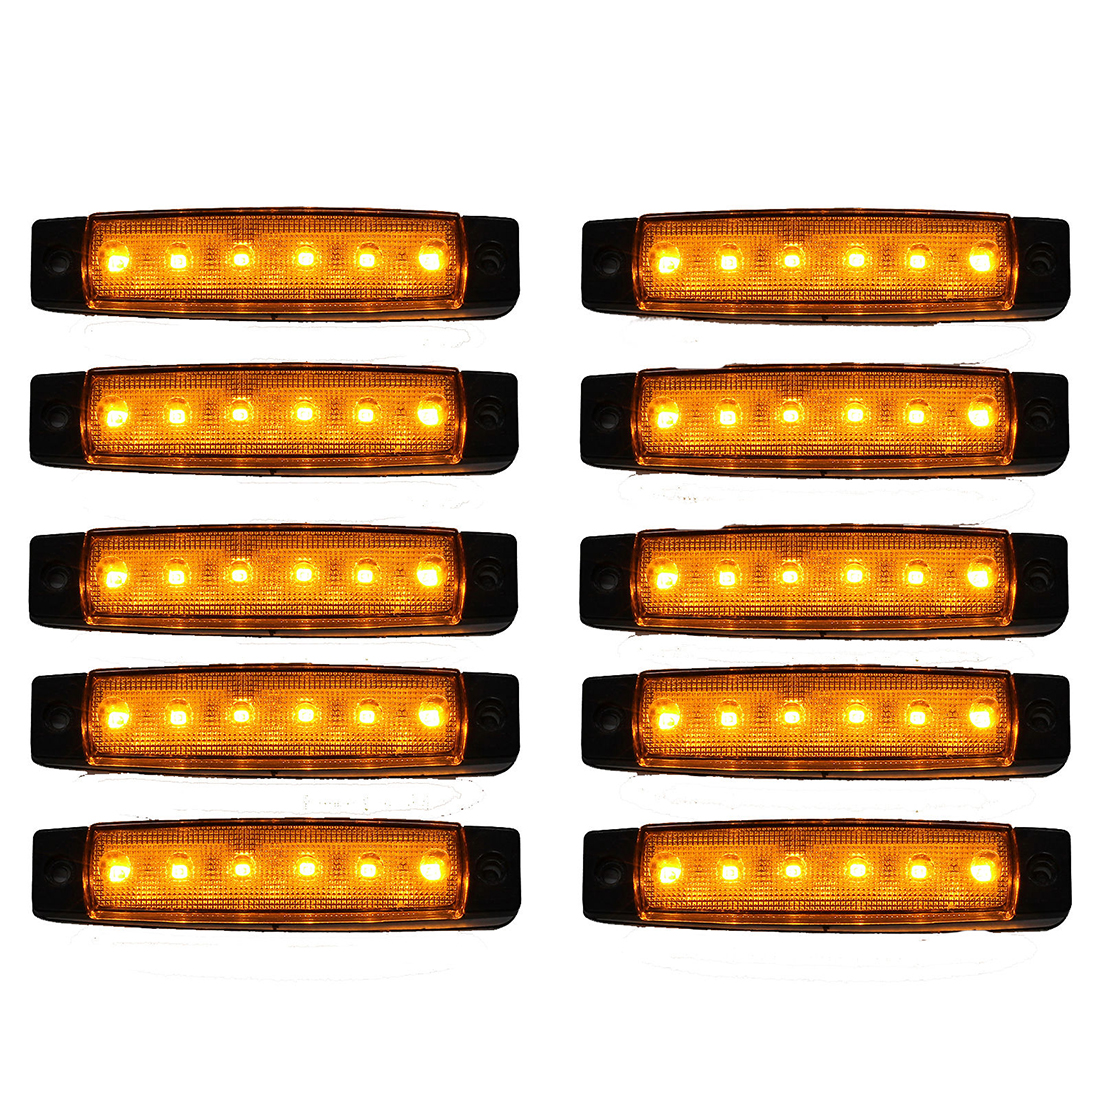 10pcs 12V 6 LED SMD LED Auto Car Bus Truck Wagons Side Marker Indicator Trailer Light Rear Side Lamp cyan soil bay 10pcs 3led amber waterproof side marker lights clearance lamp trailer truck bus car 3 led 12v 24v